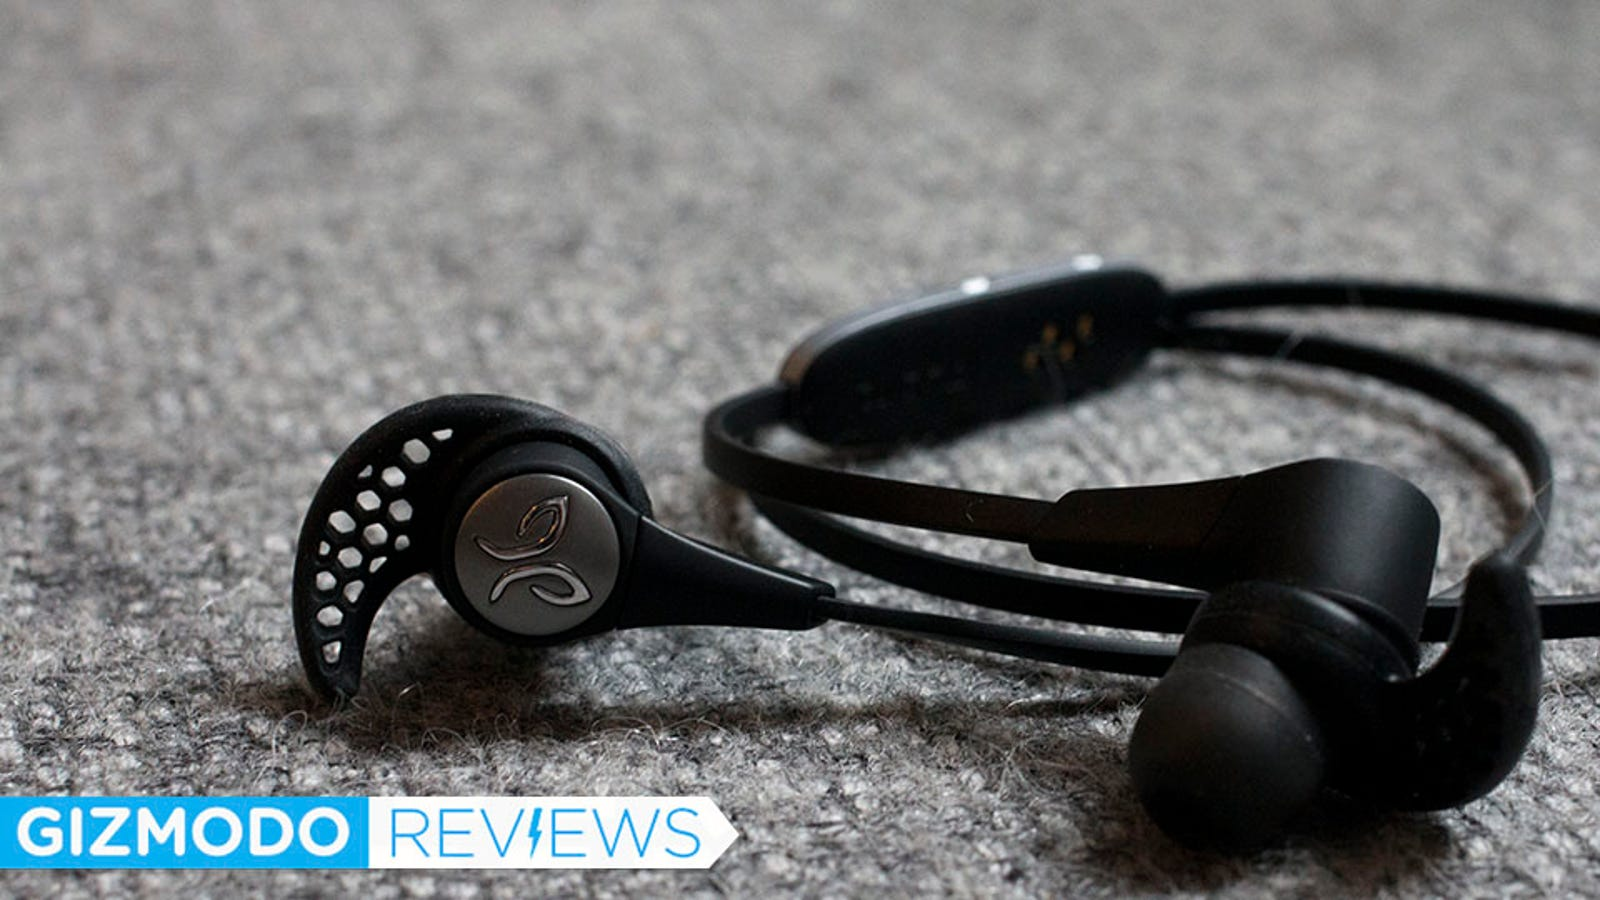 Skullcandy athletic earbuds - jlab earbuds diego